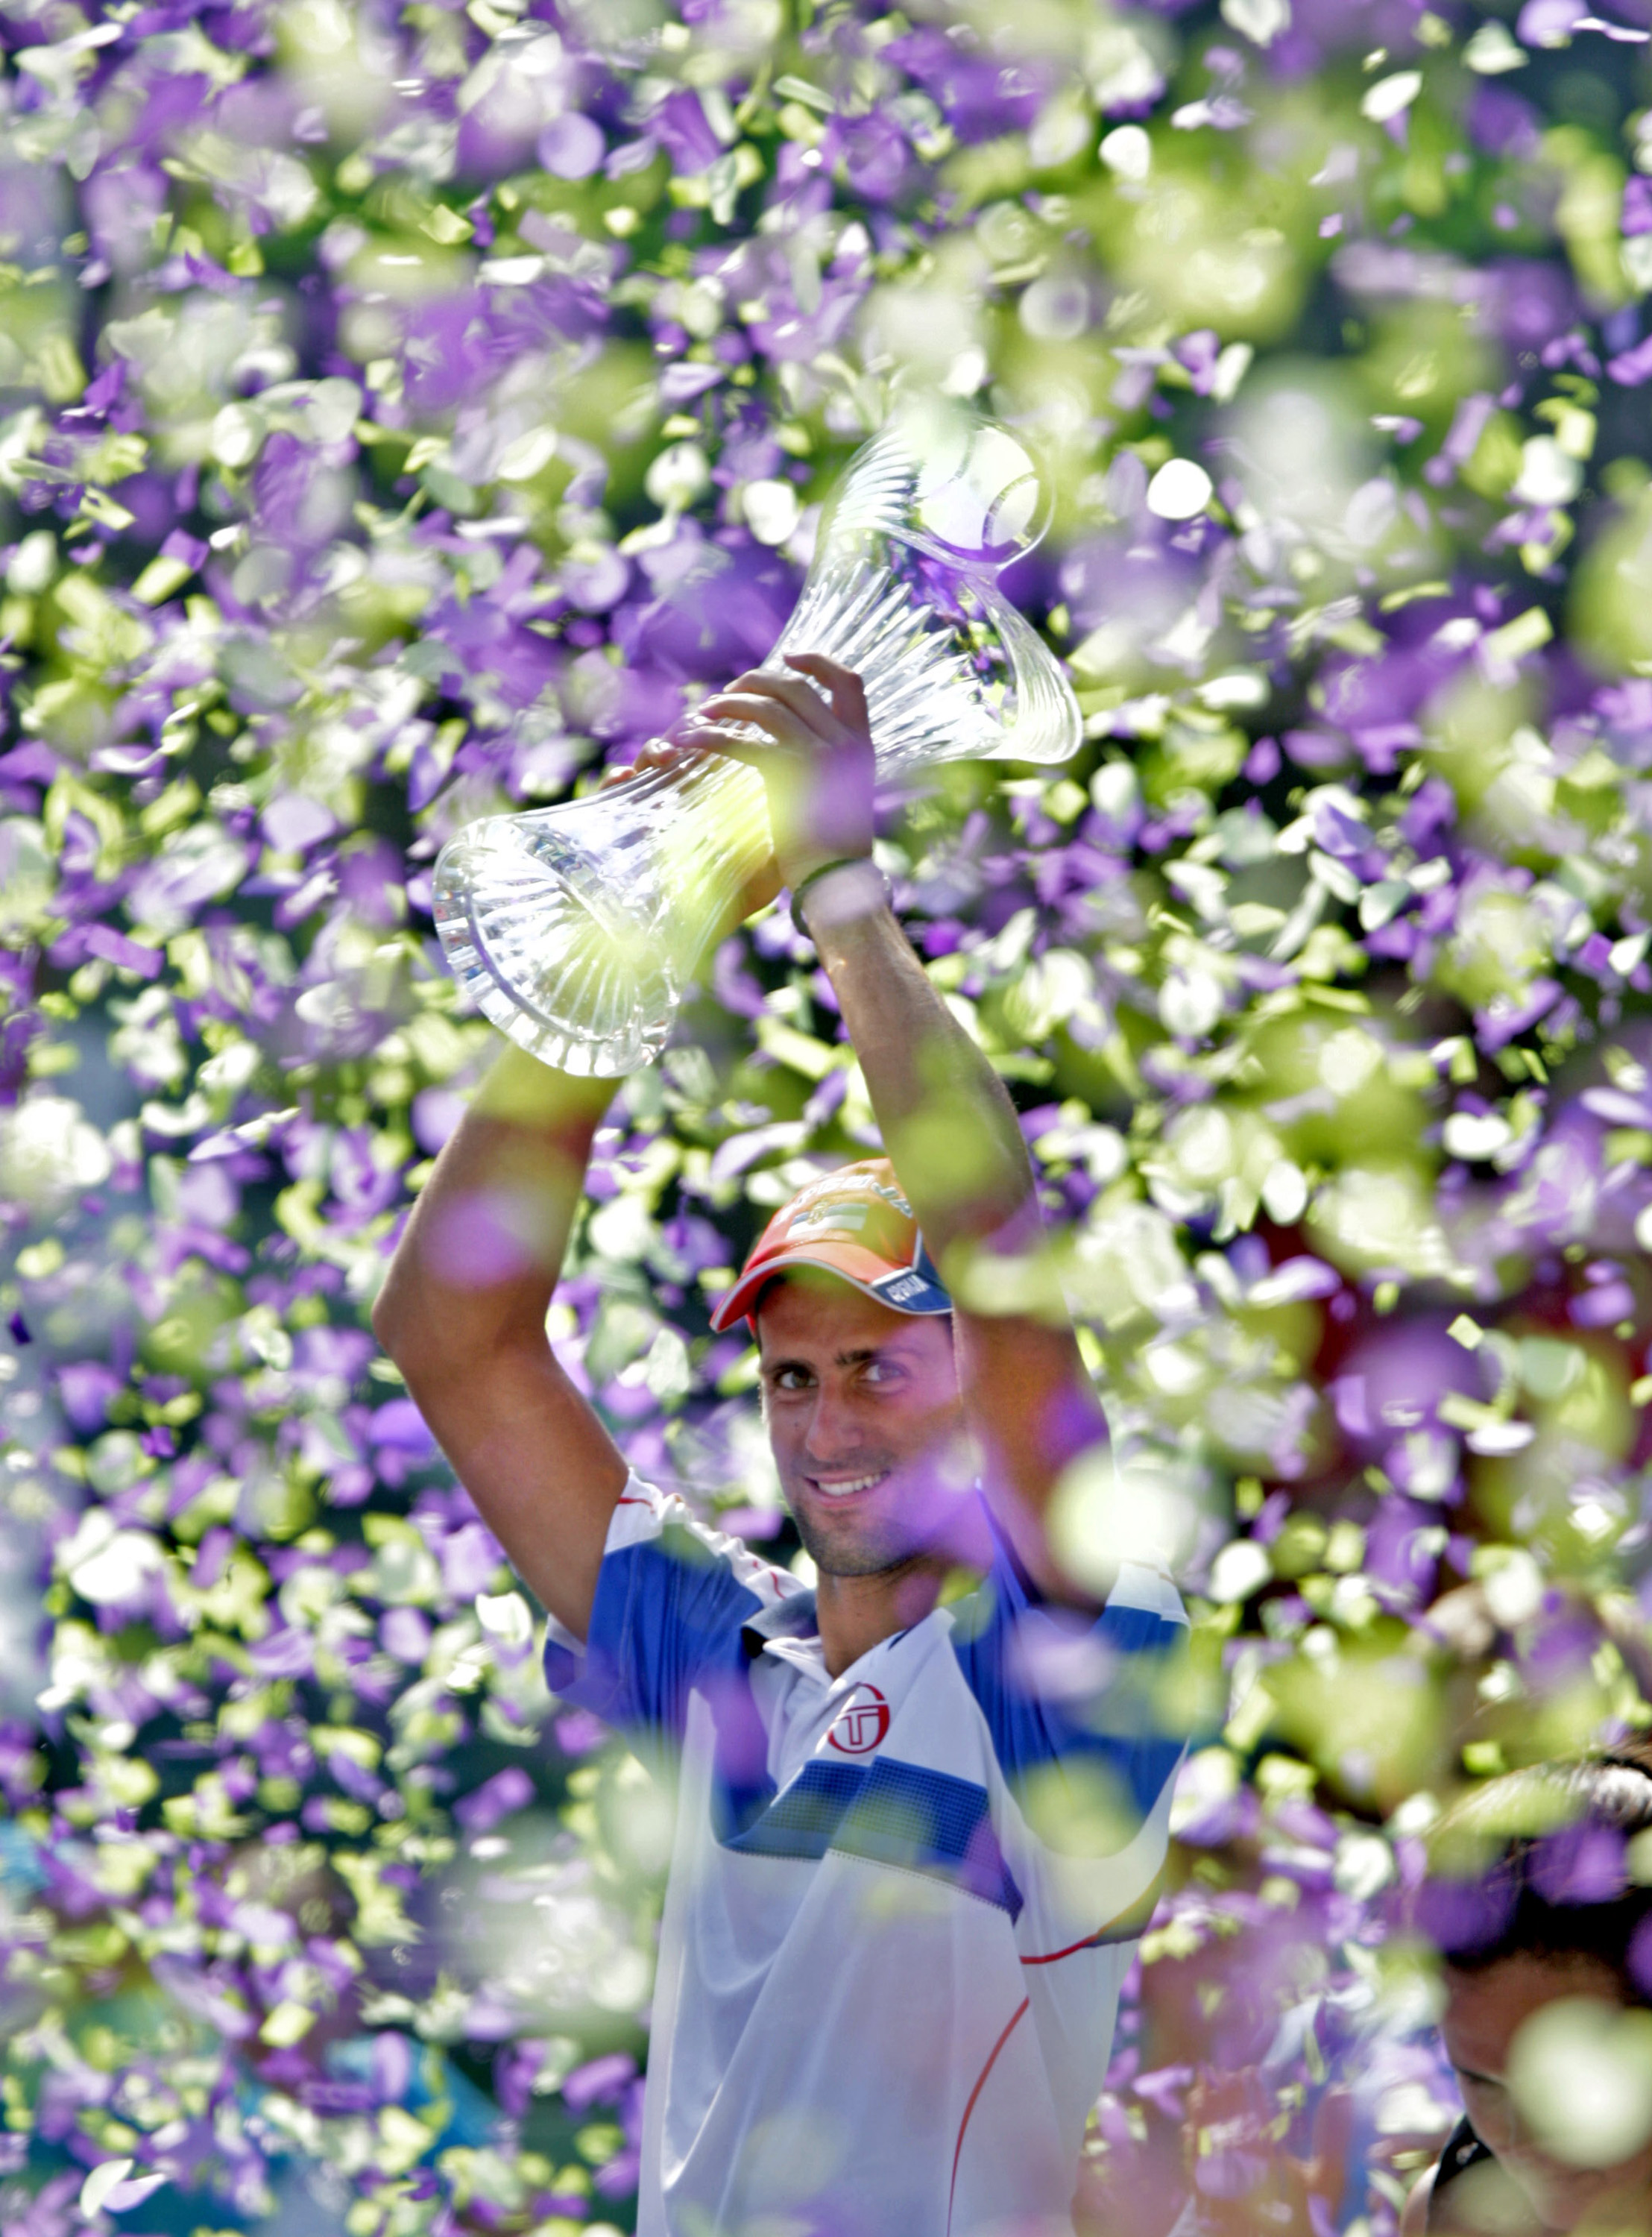 The victories kept coming for Novak in a similar uniform at the Sony Open.